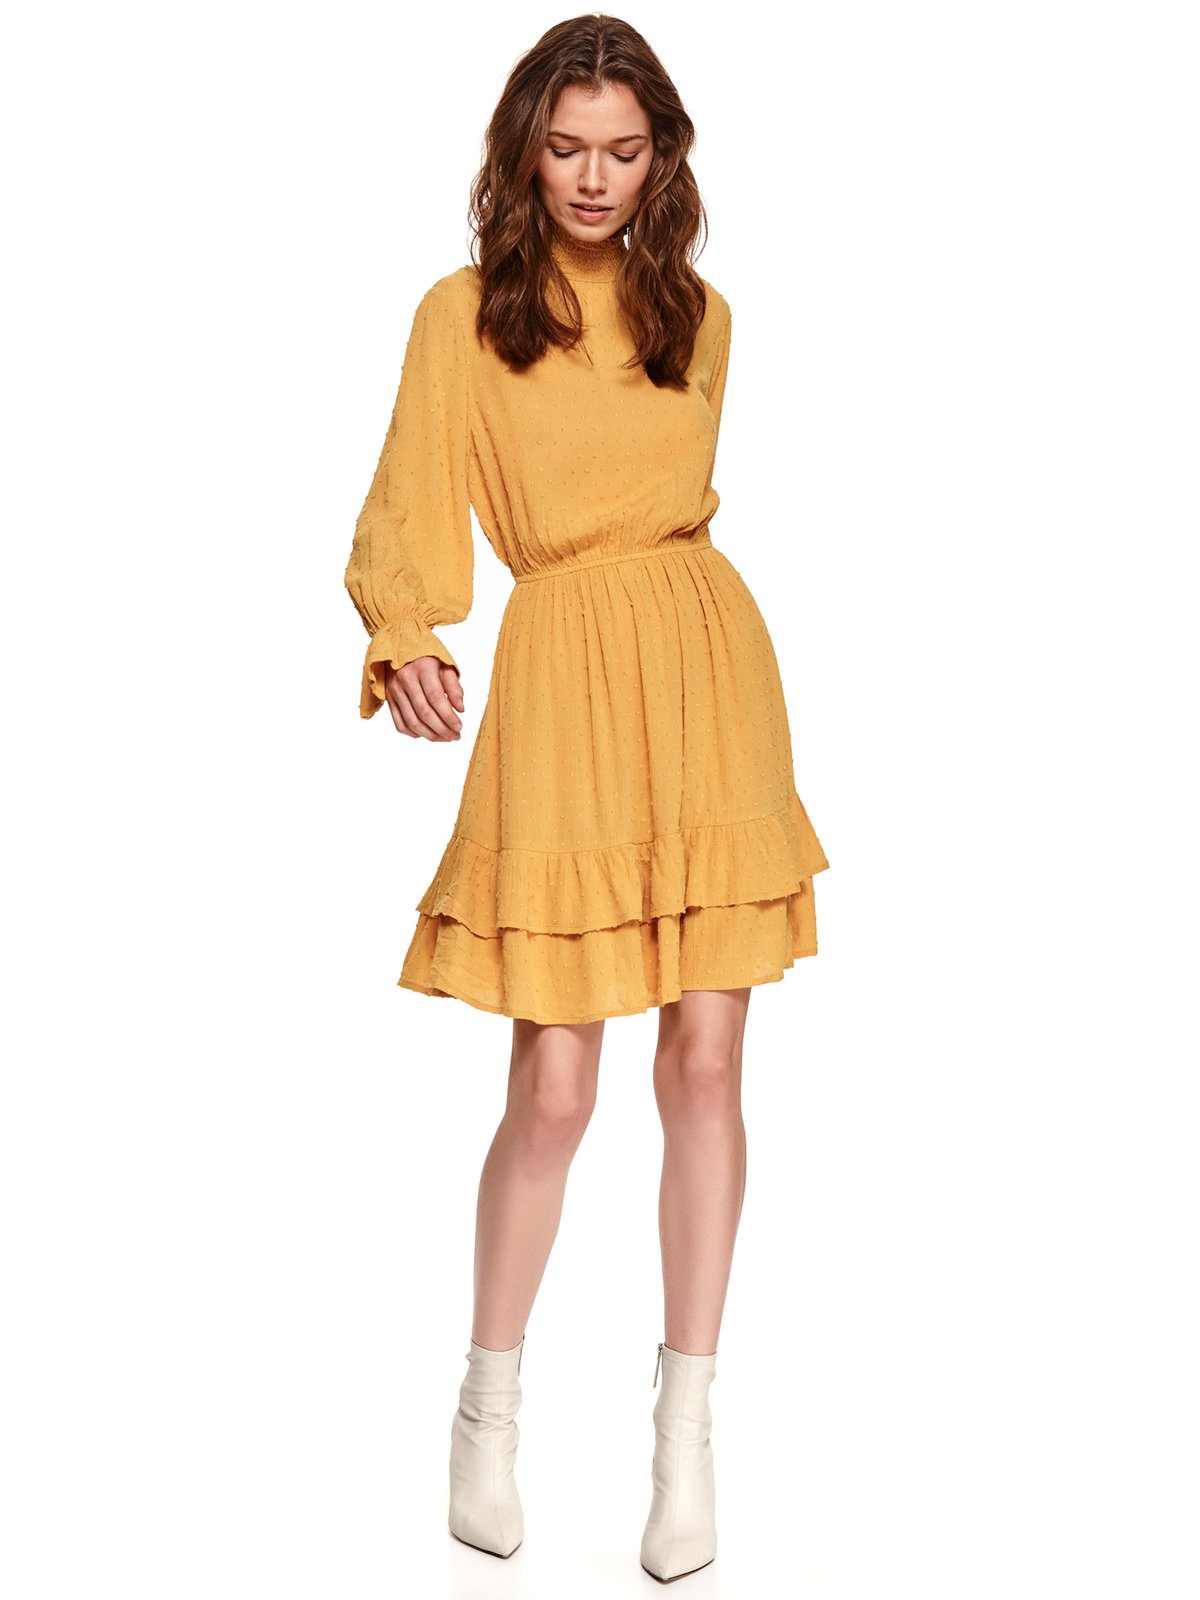 Yellow dress cloche with elastic waist plumeti with turtle neck with ruffle details